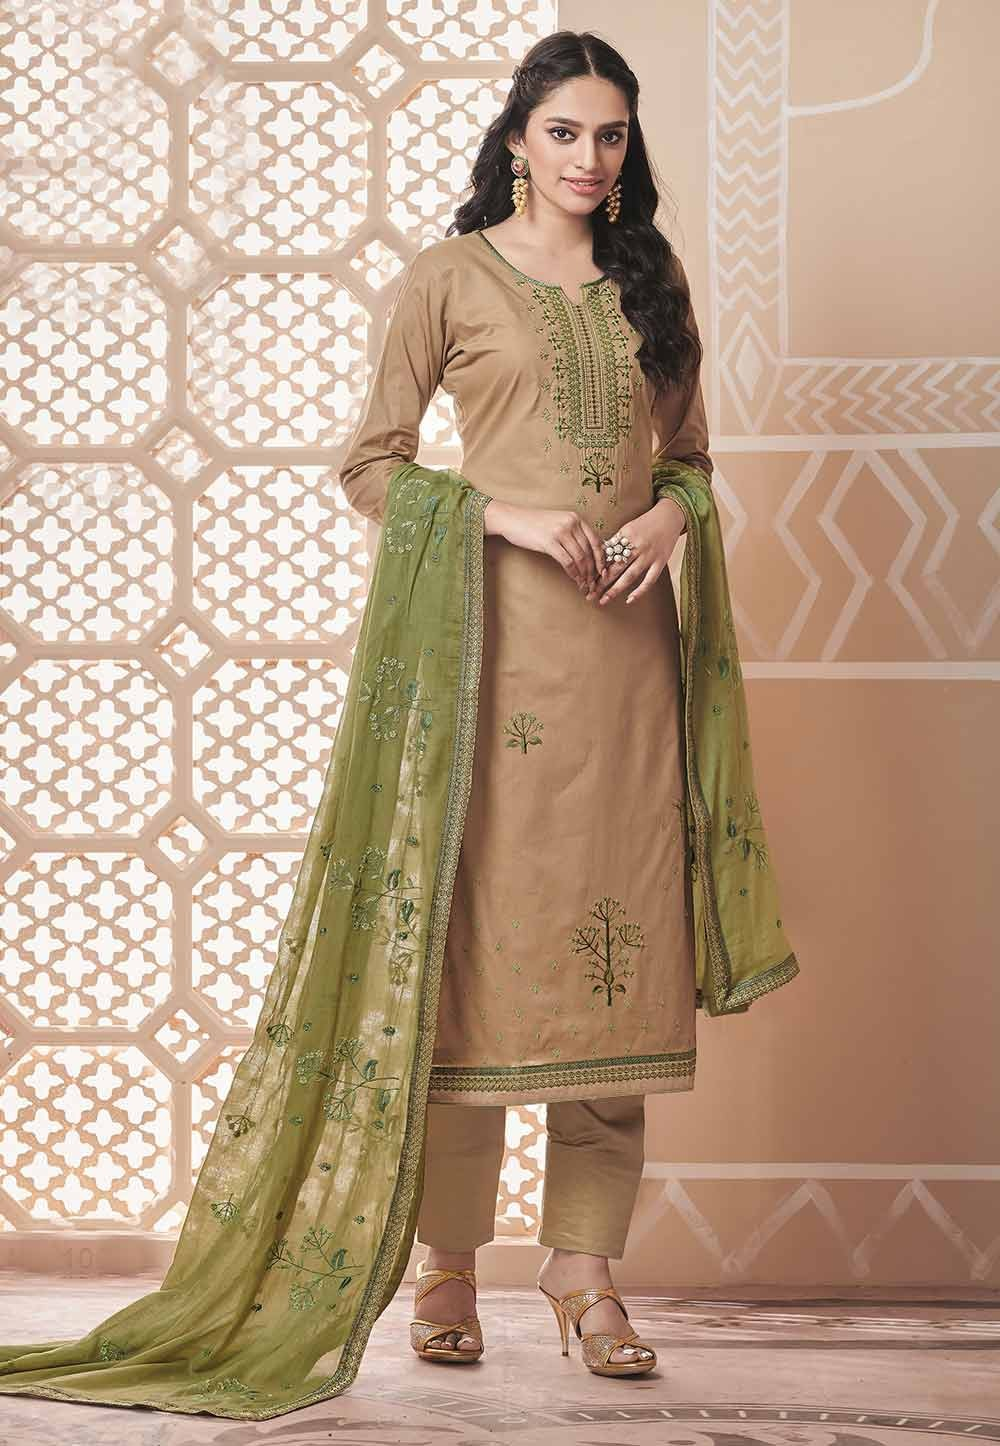 Beige Colour Casual Salwar Kameez.